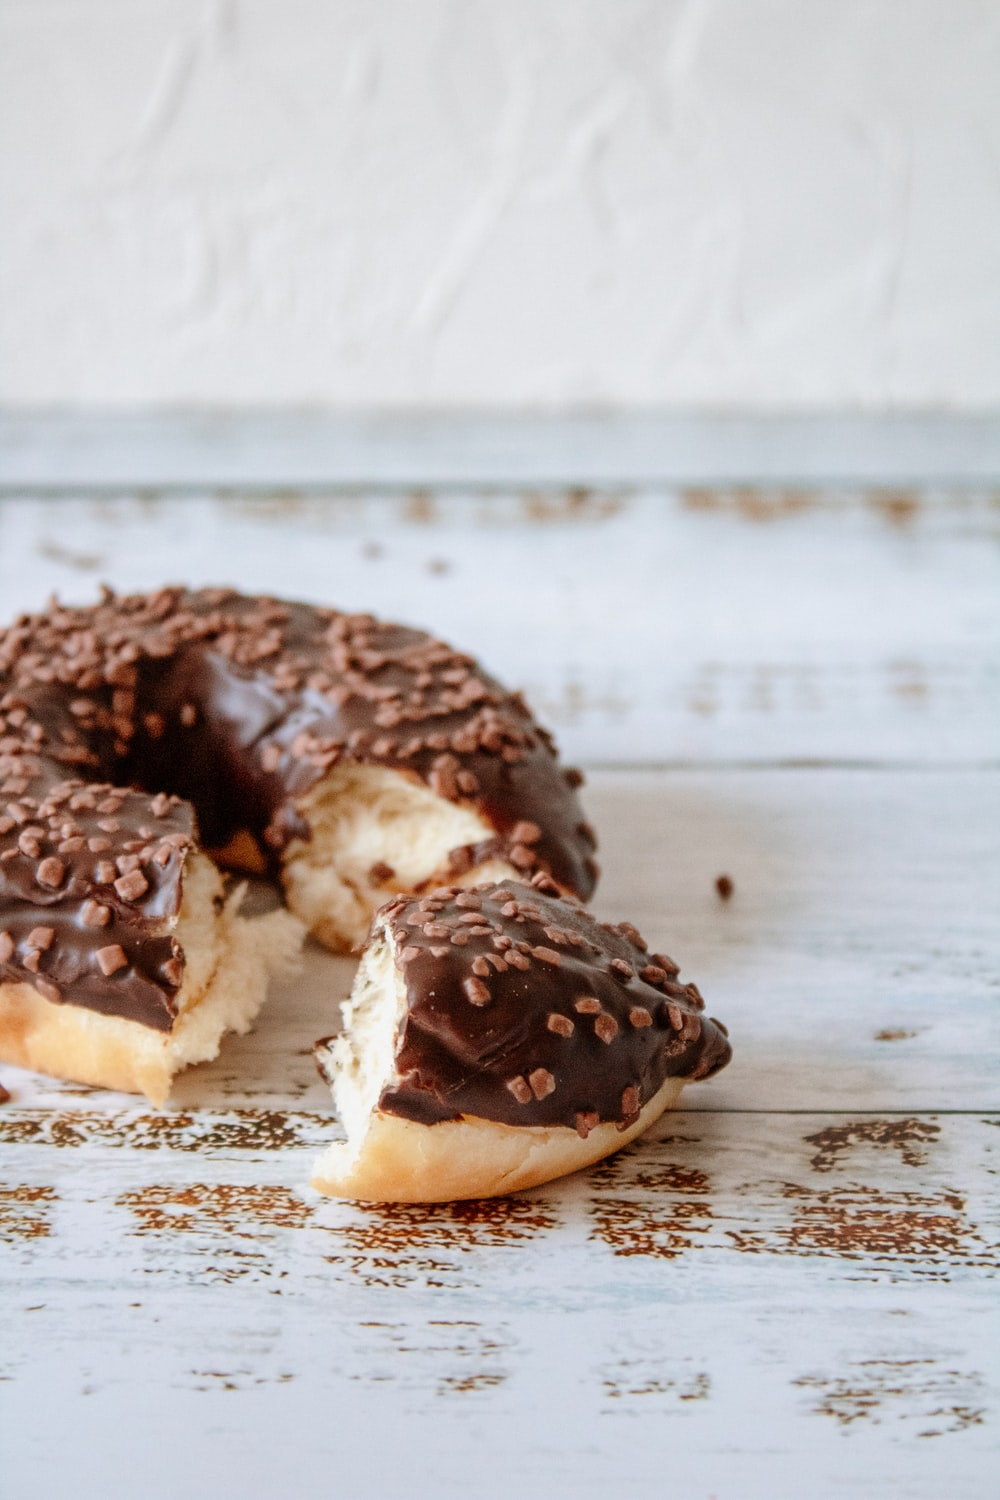 brown and white doughnut on white paper